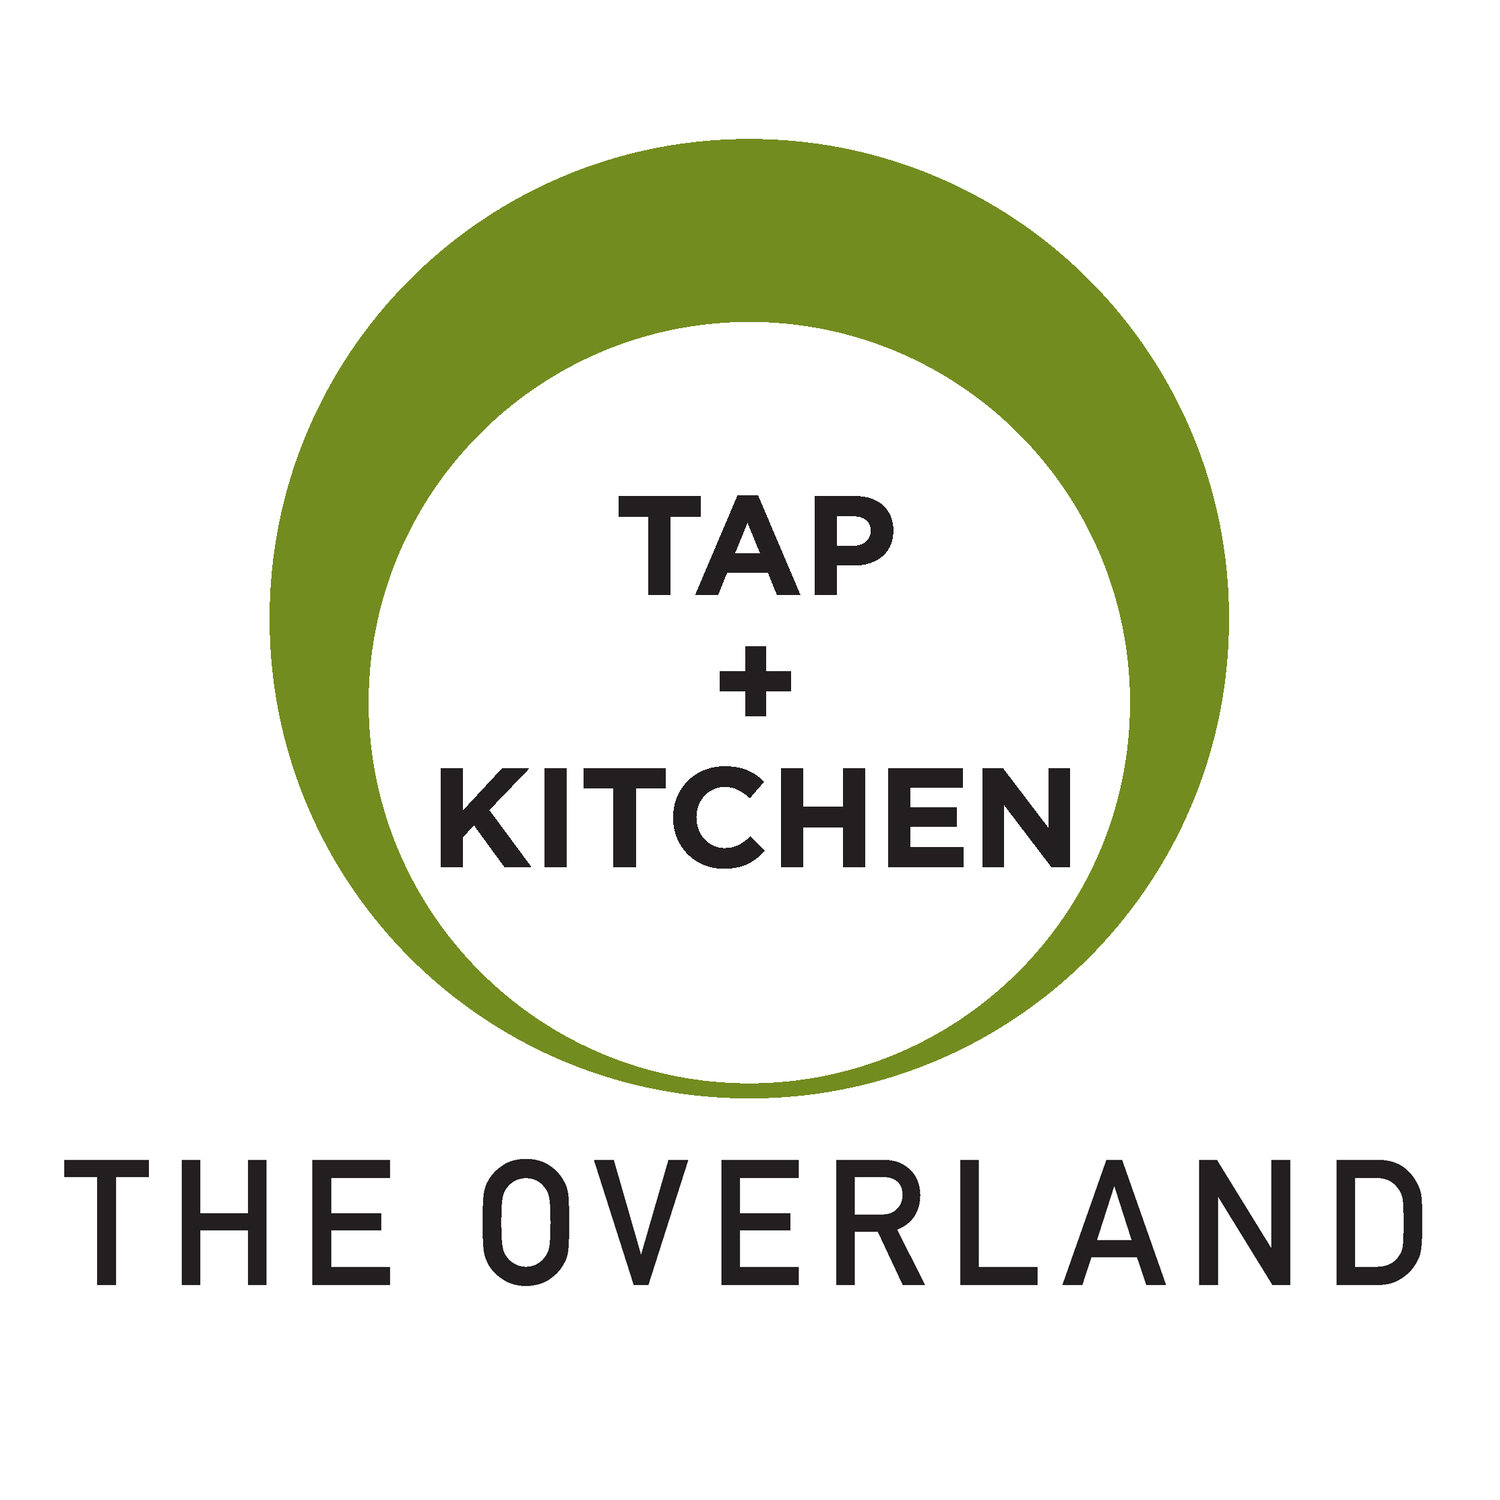 The Overland Tap + Kitchen